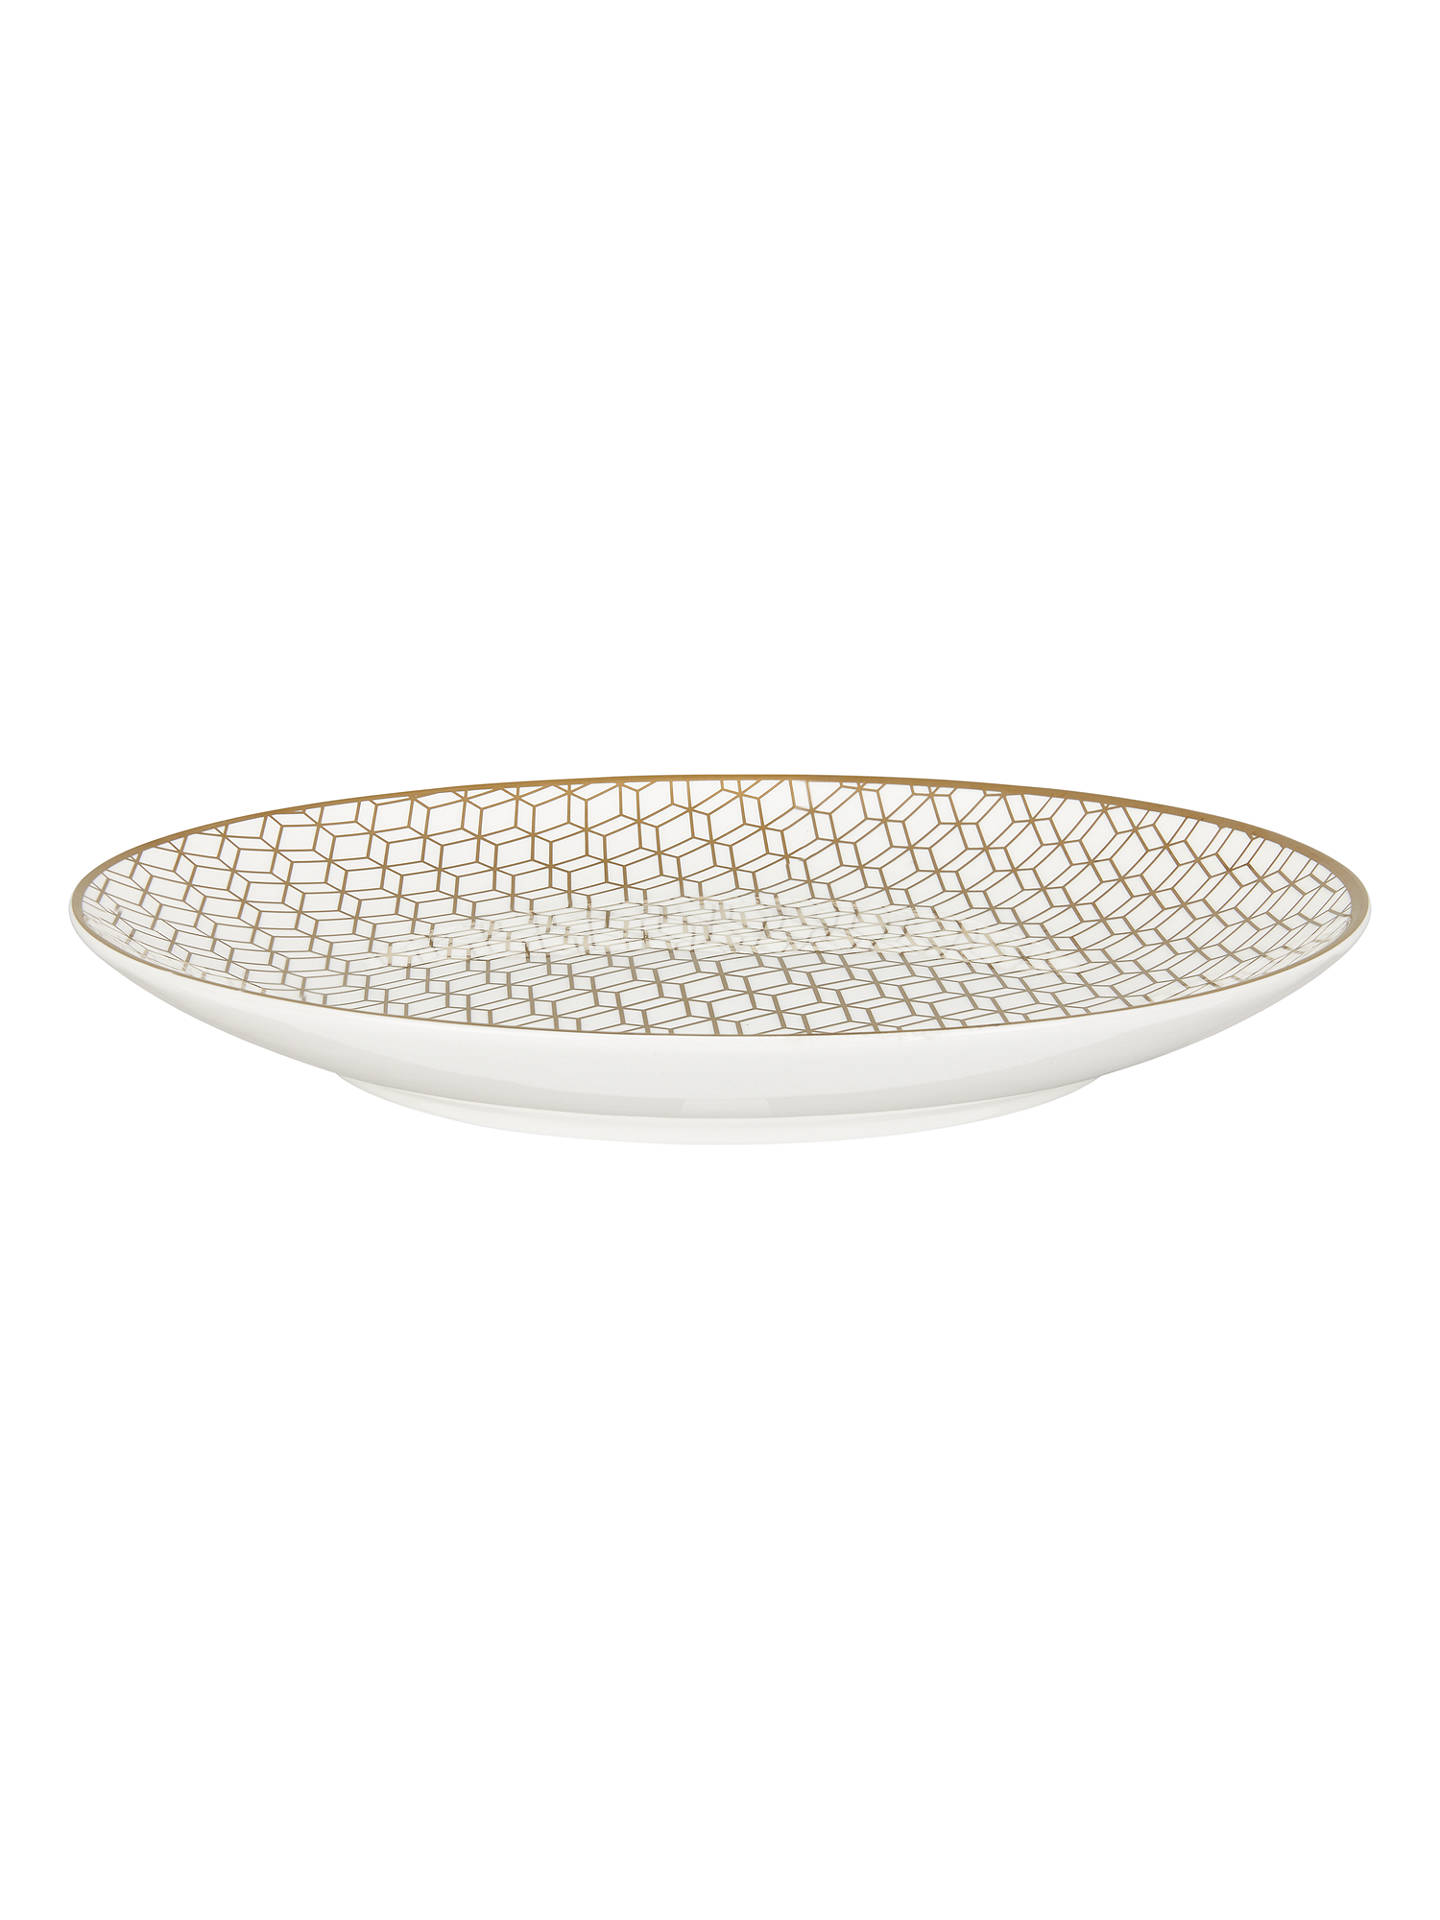 BuyJohn Lewis & Partners Geometric Decorated Platter, Gold, 31cm Online at johnlewis.com